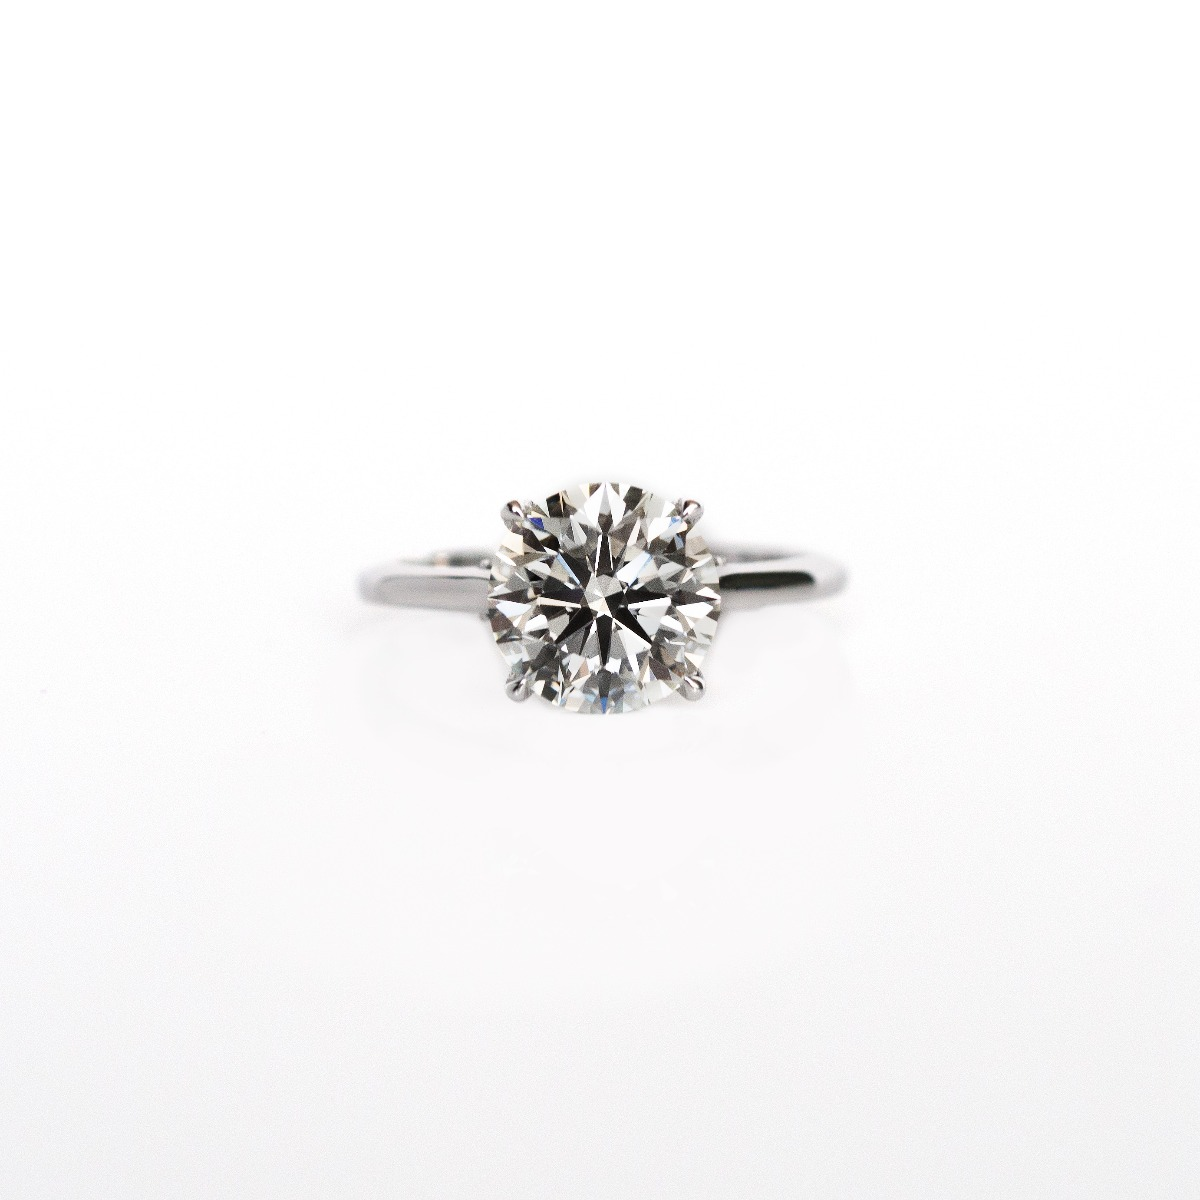 DBK Classic Solitaire Setting With Diamond Basket & Bridge In White Gold